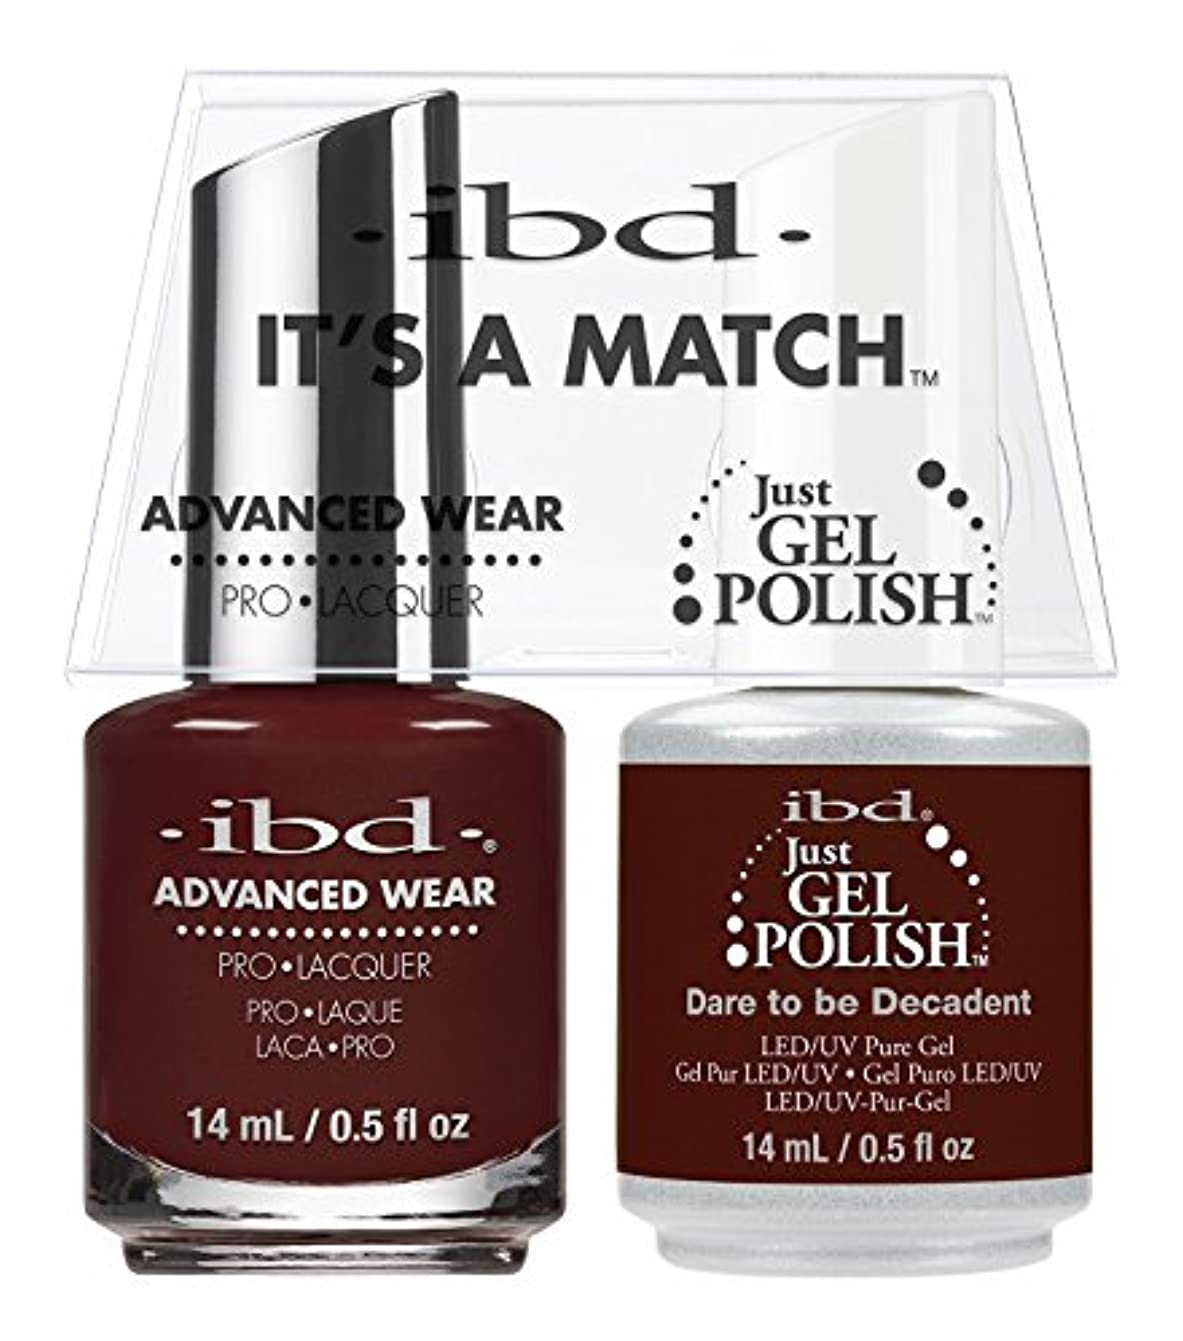 ibd - It's A Match -Duo Pack- Dare to be Decadent- 14 mL / 0.5 oz Each